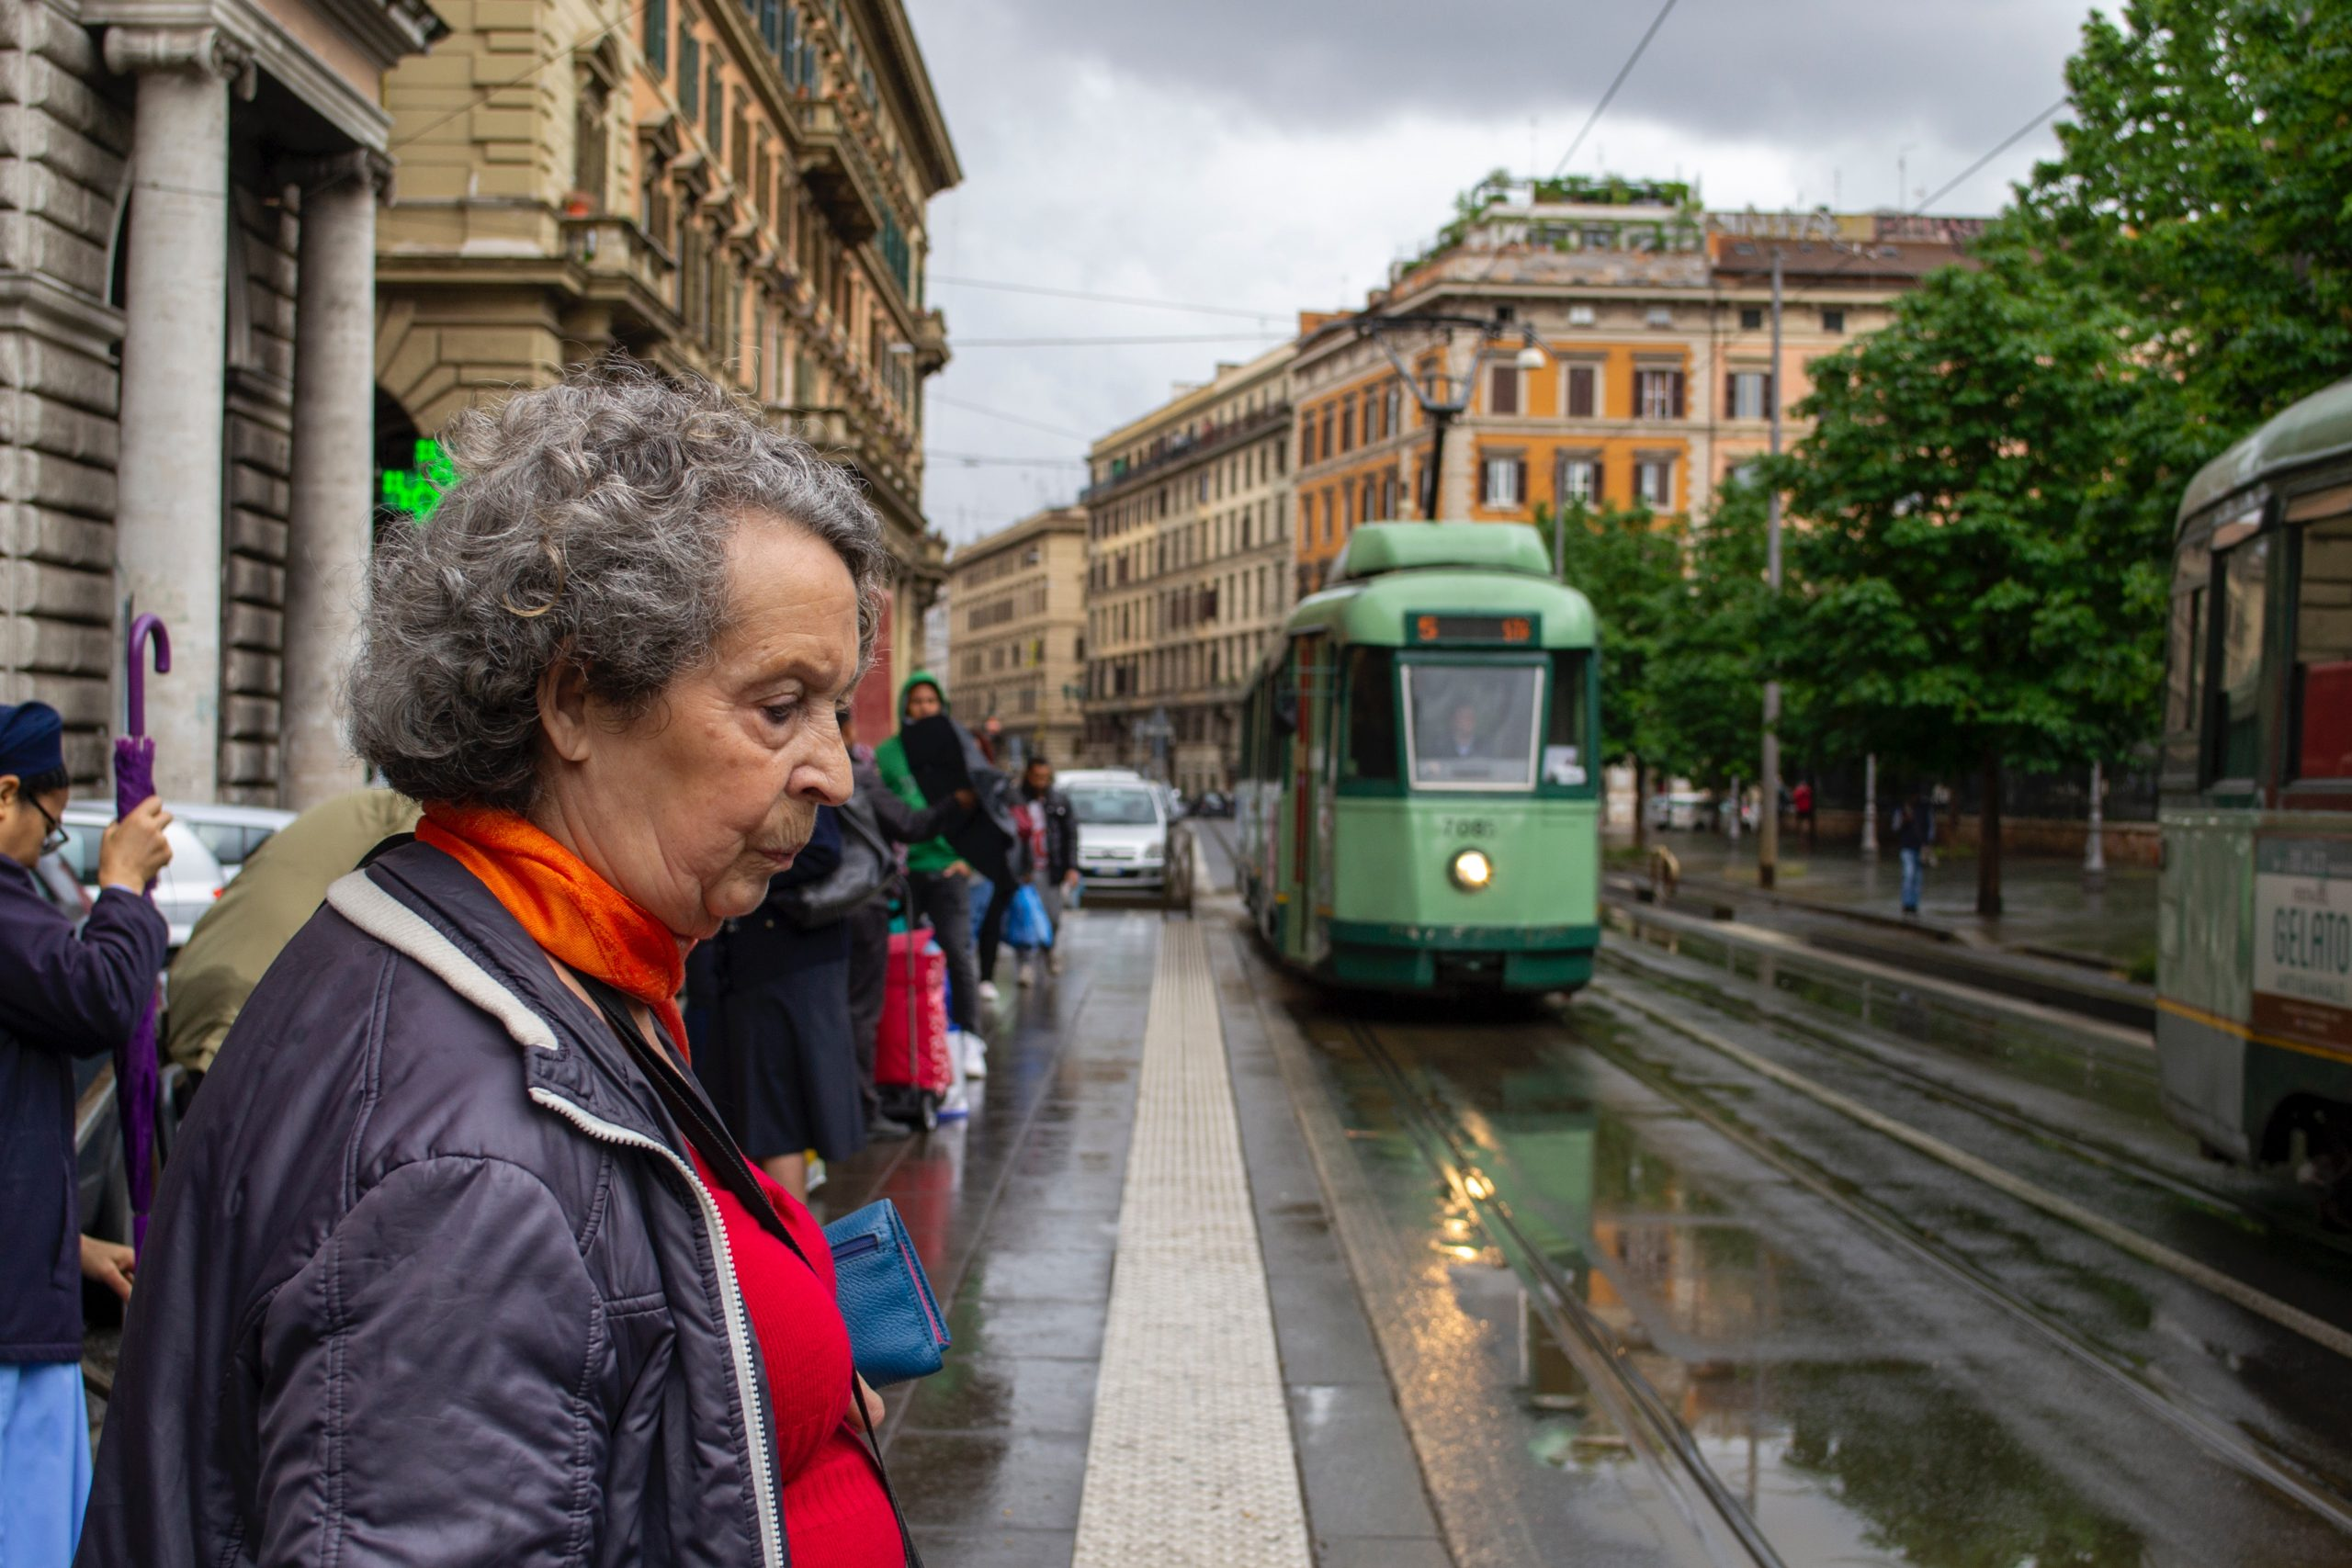 esquilino tram moving to rome